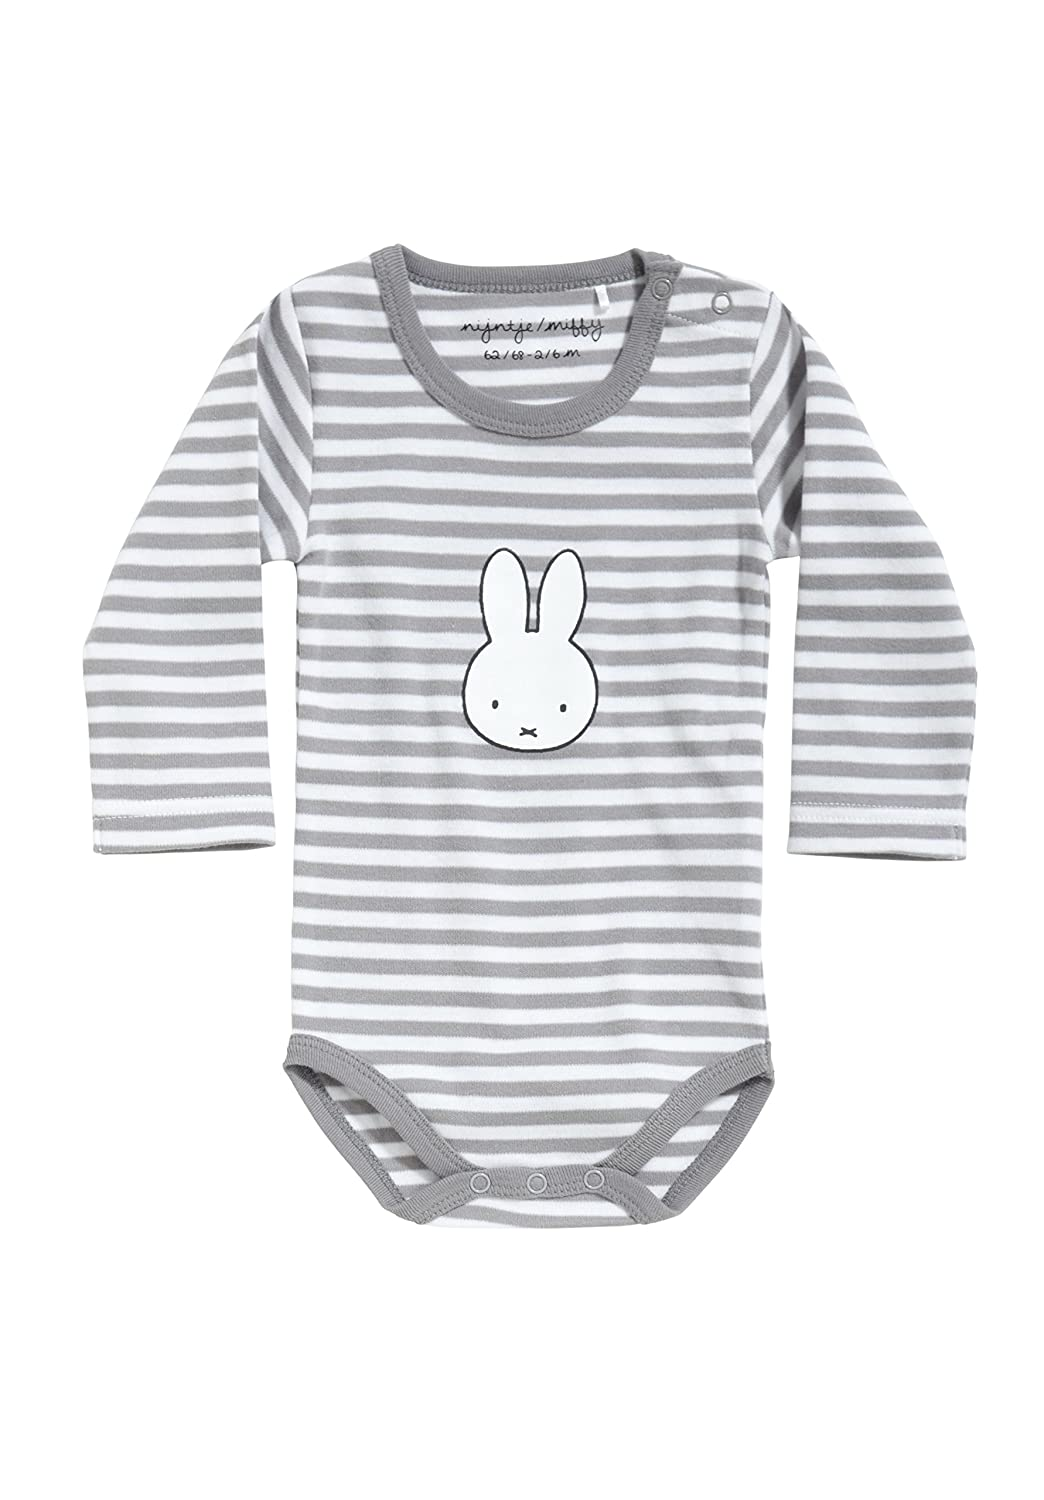 156540980853 Baby body striped, long sleeve, with miffy print, size: 74/80:  Amazon.co.uk: Baby